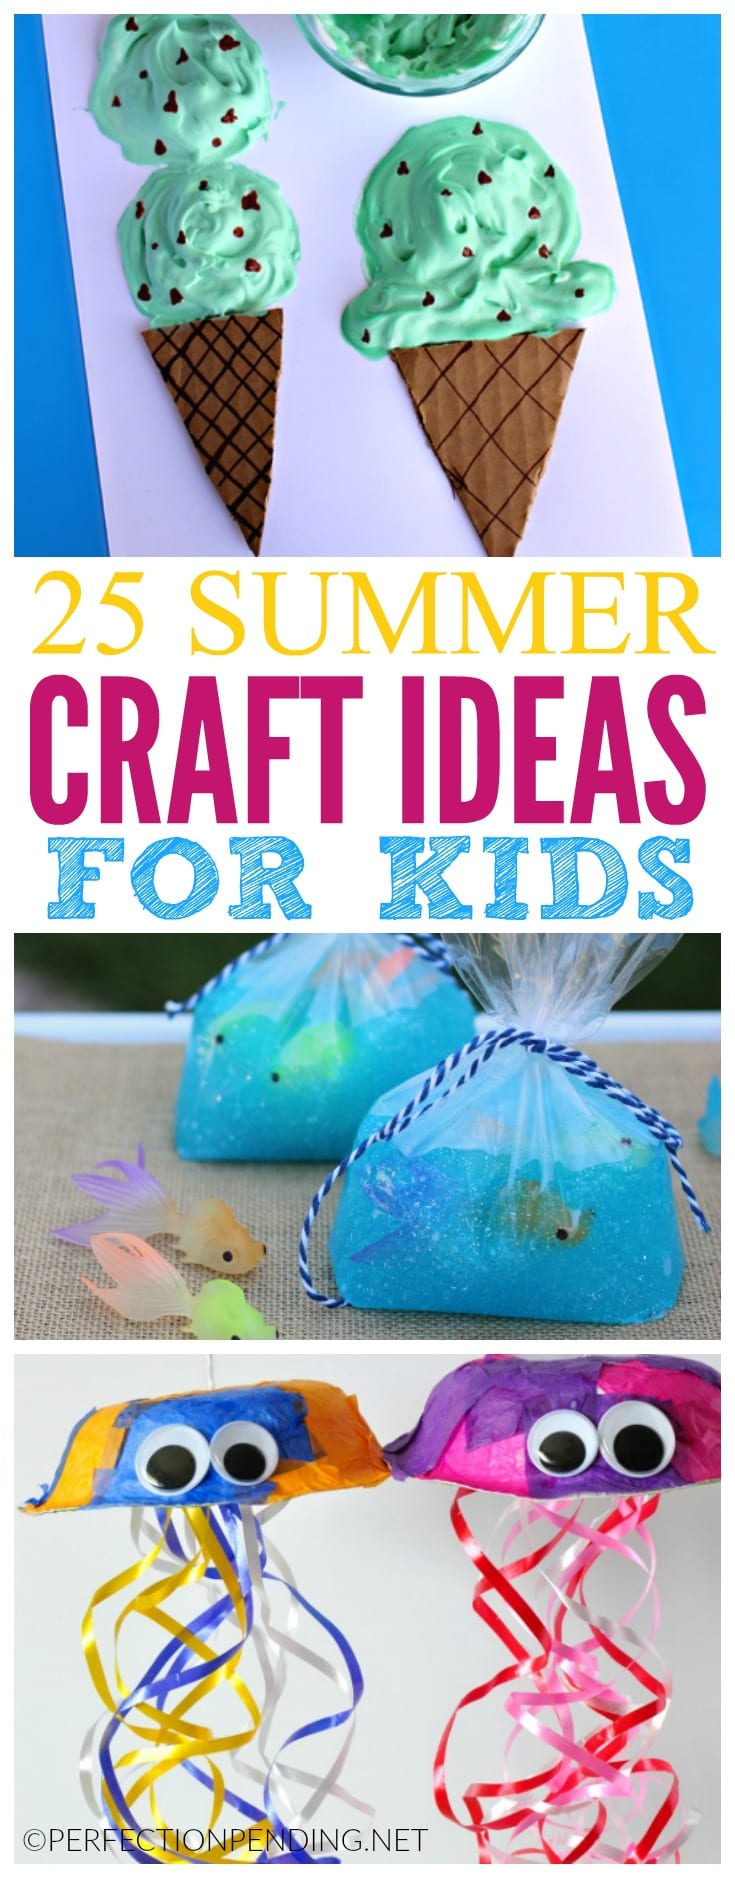 These Ideas Can Be Easily Adapted For Kids Of All Ages And Most Are Easy To Make With Just Supplies From Around Your Home The Cool Thing About This List